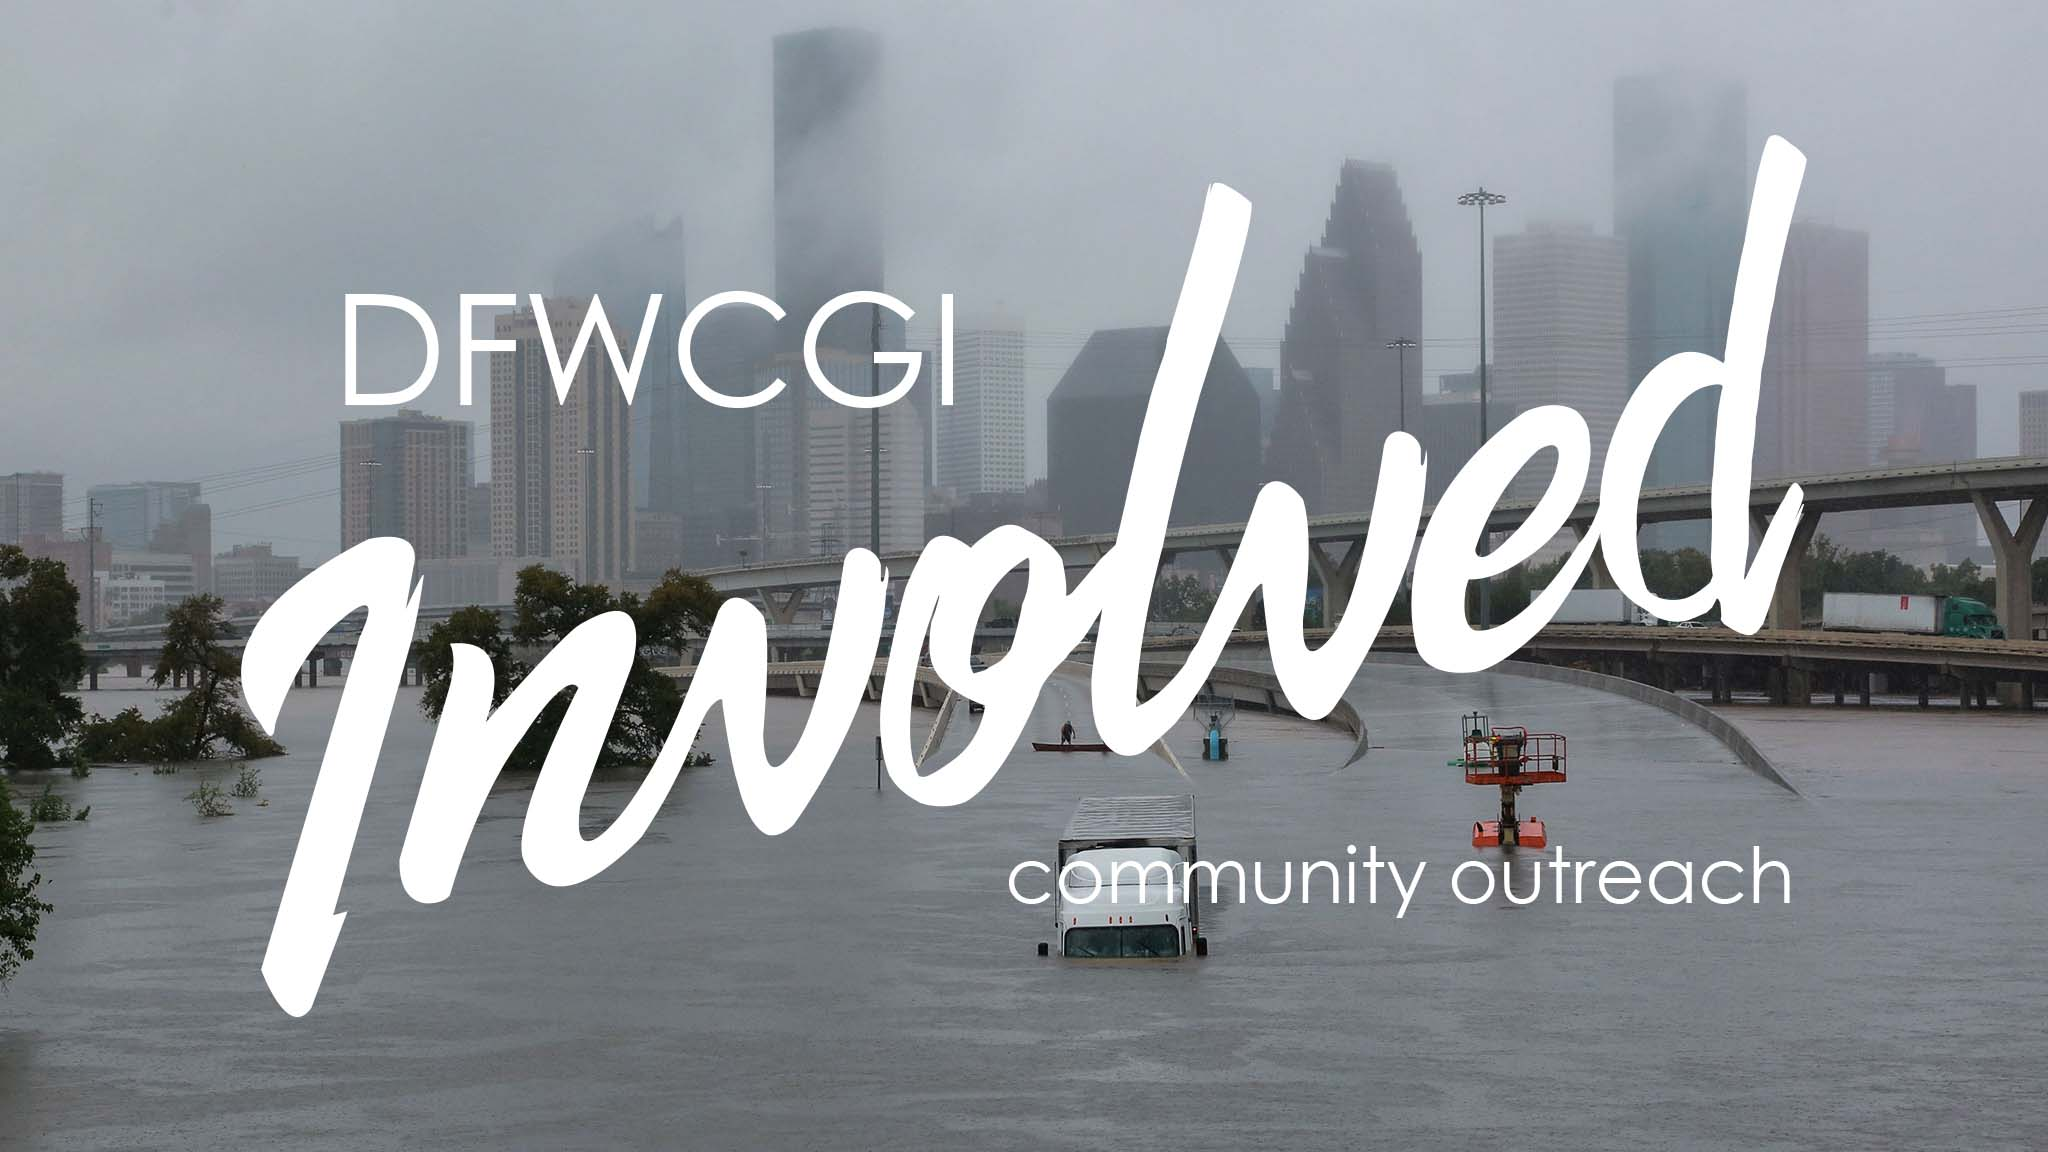 DFWCGI & CCLLC Assisting in Houston